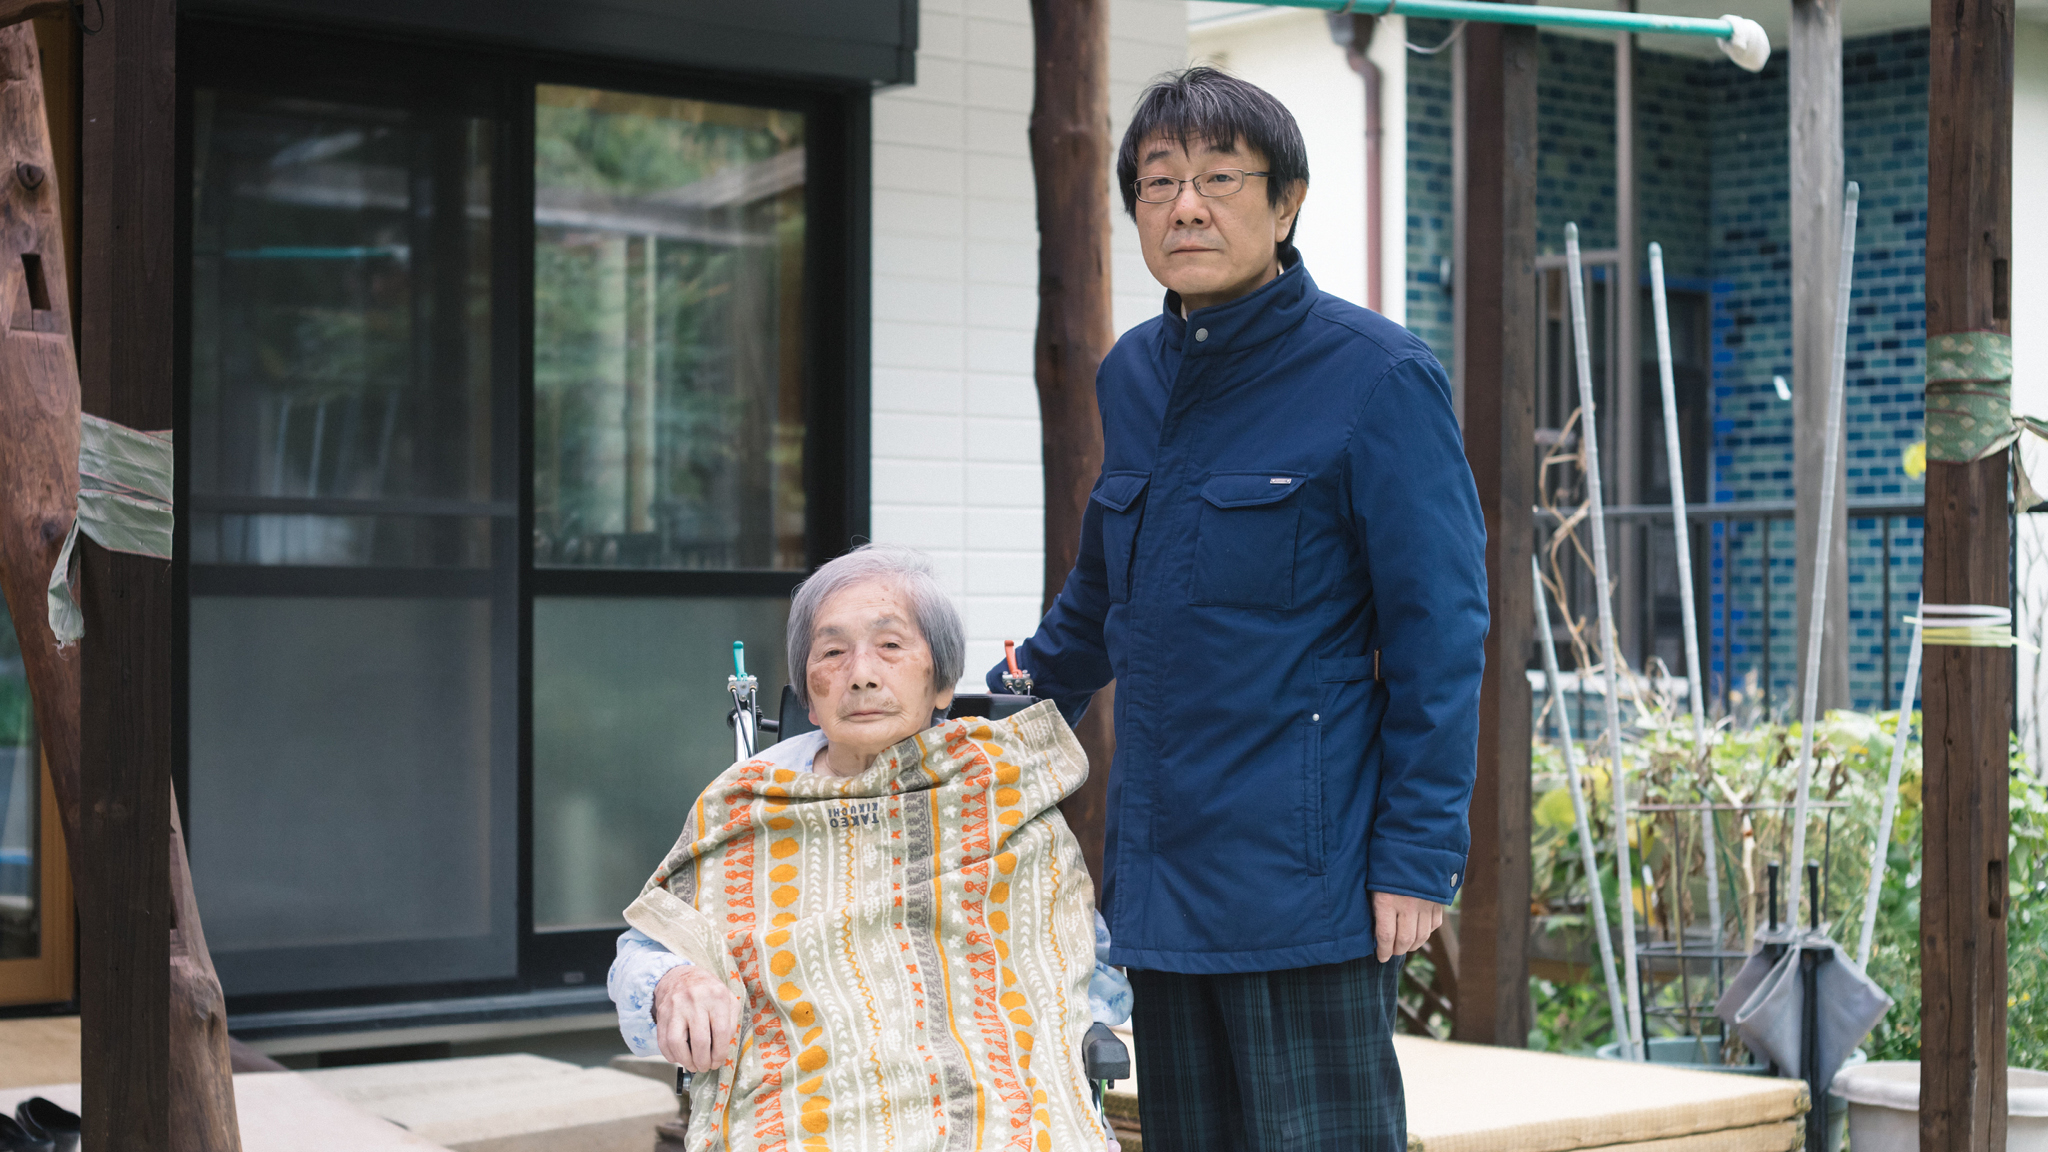 Japan's big rethink on caring for people with dementia